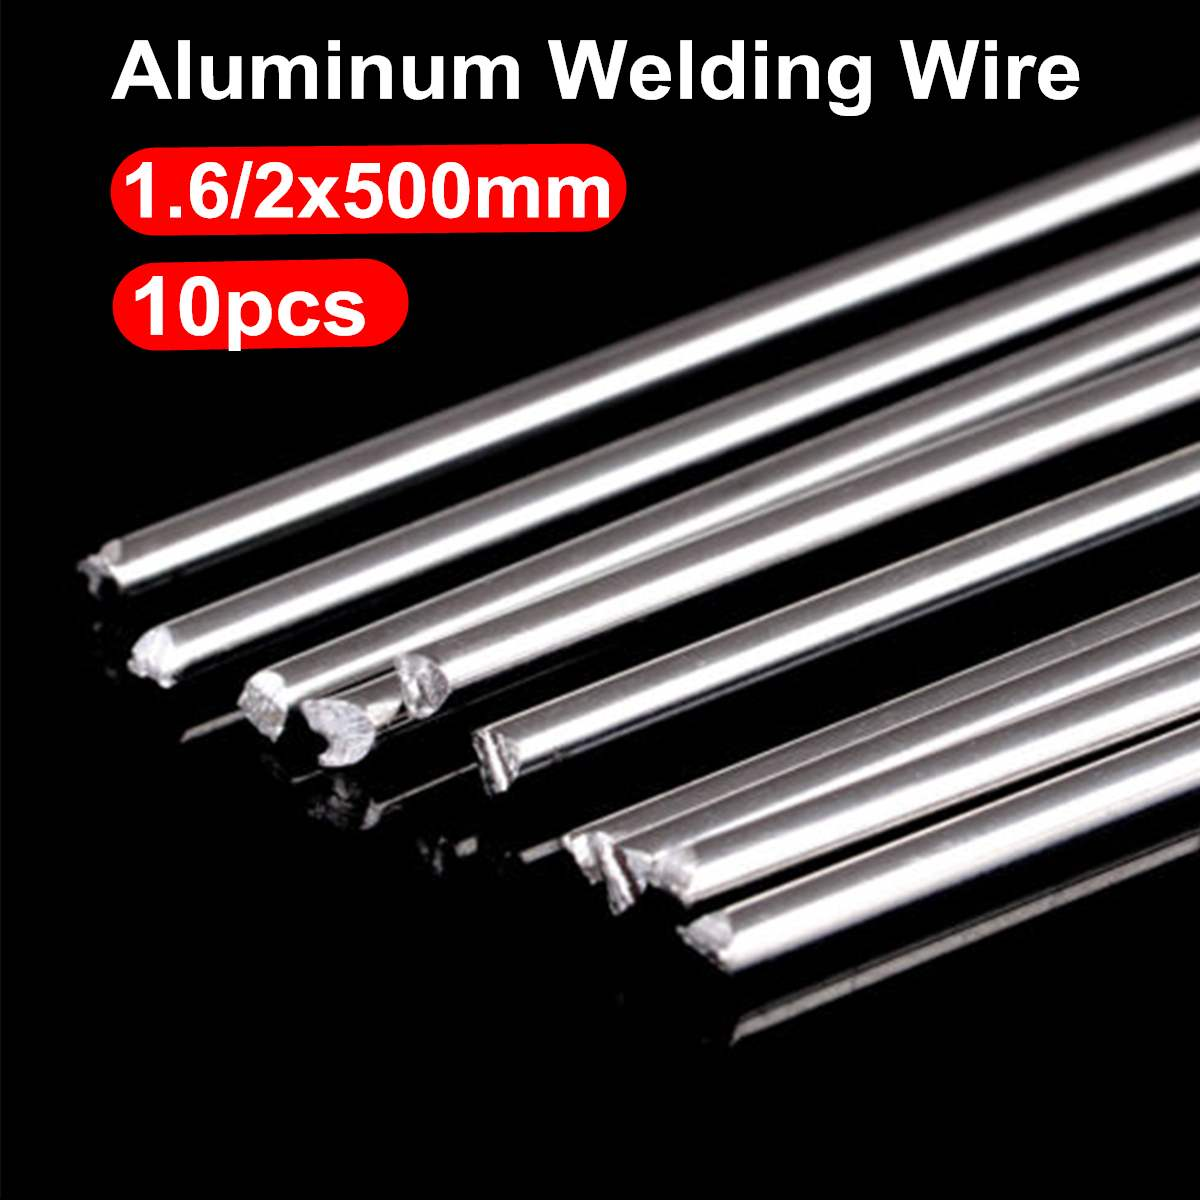 10pcs Aluminum Welding Rods Low Temperature Soldering Sticks Flux-Cored Rod Kits 1.6mm/2mm No Need Solder Powder